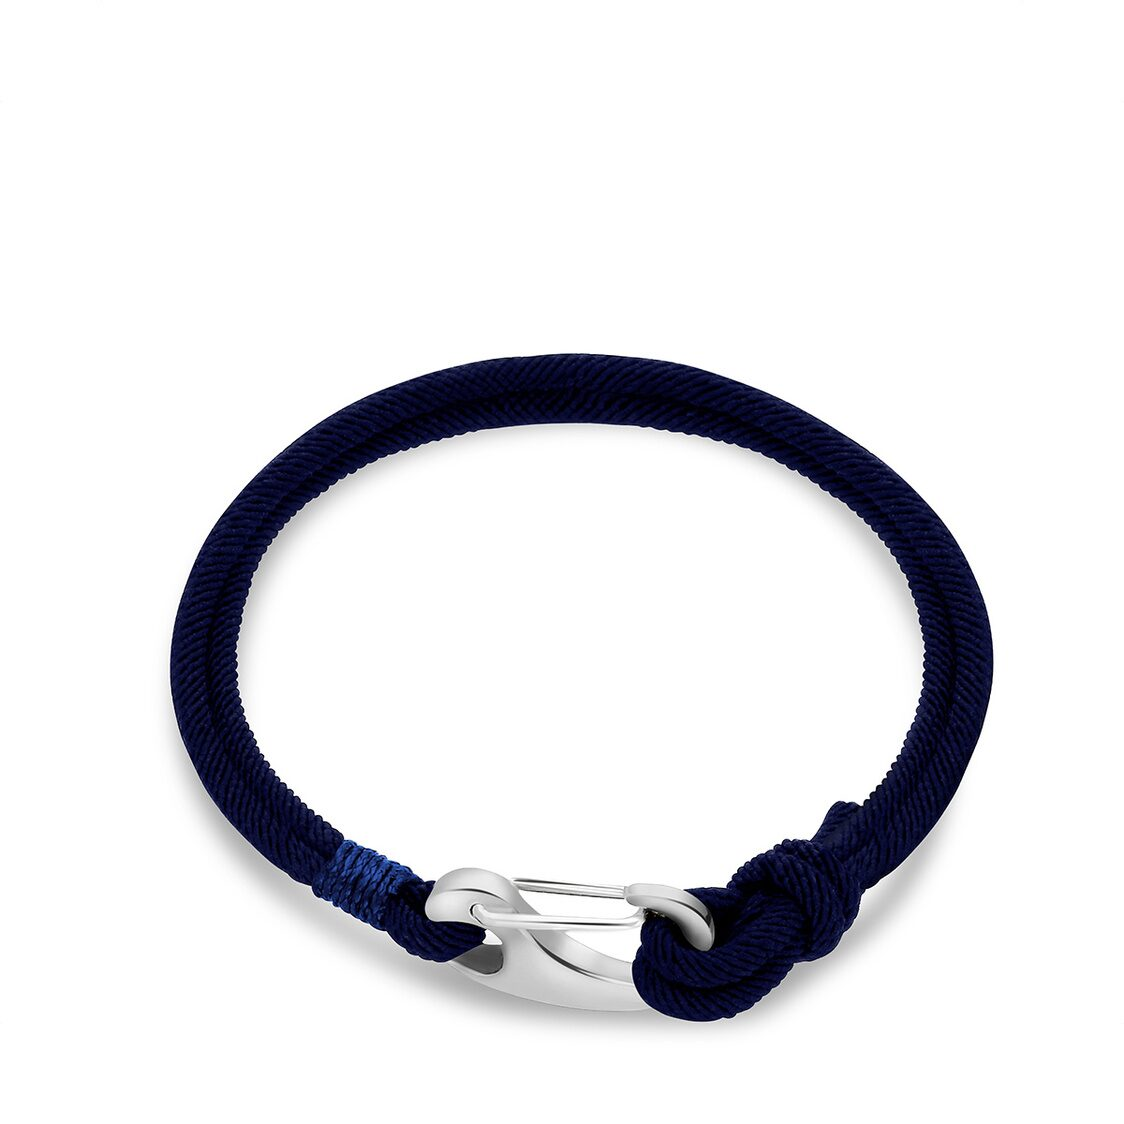 Ron Bracelet - Navy Rope